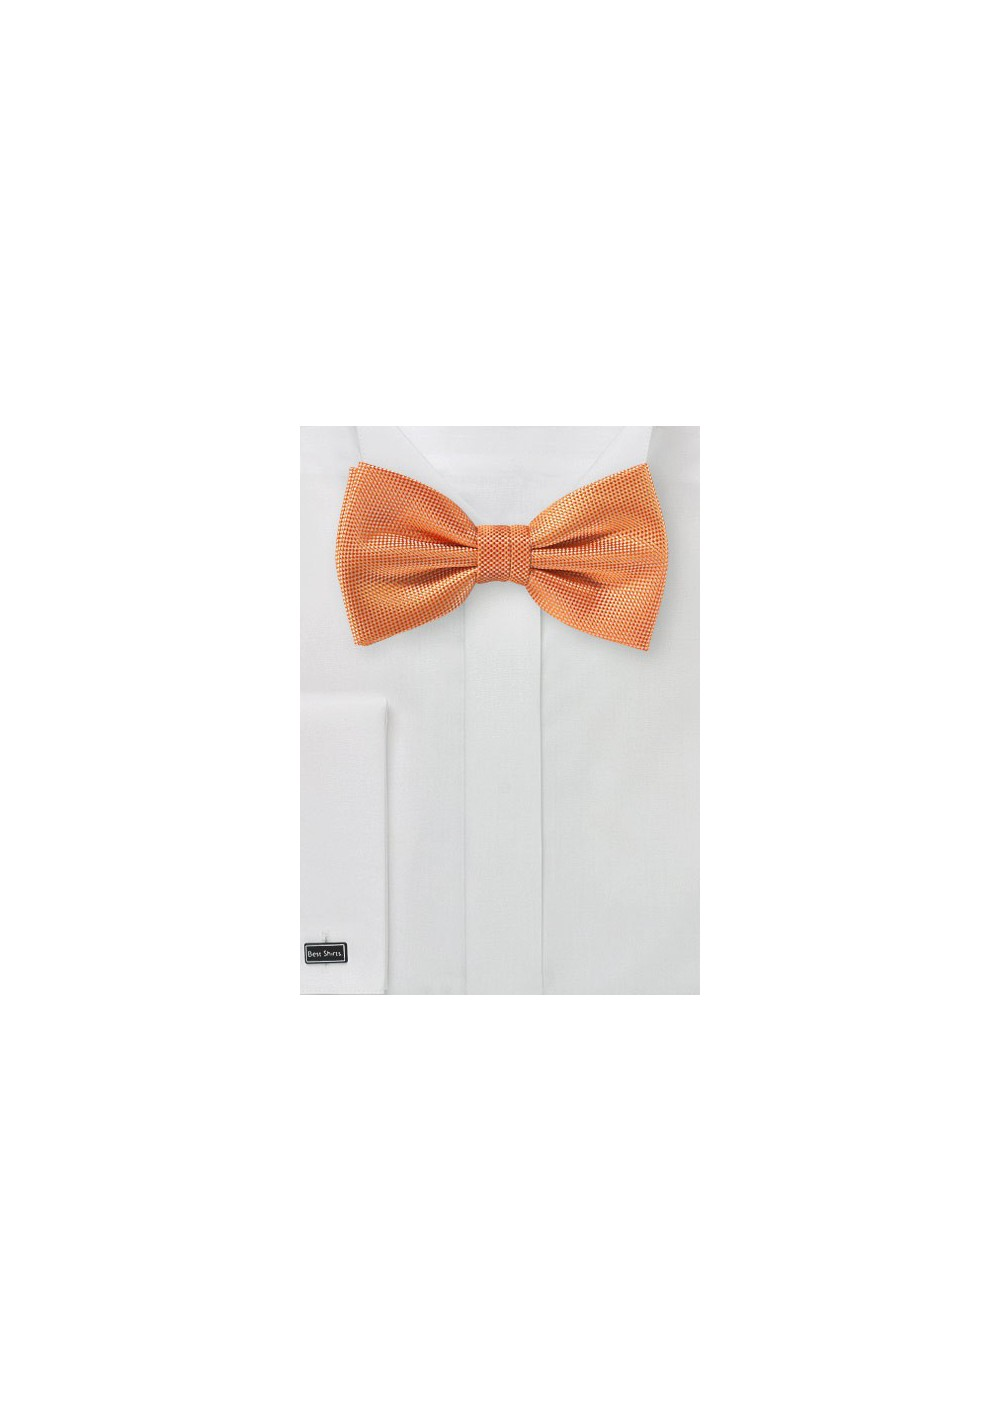 Textured Bow in Tangerine